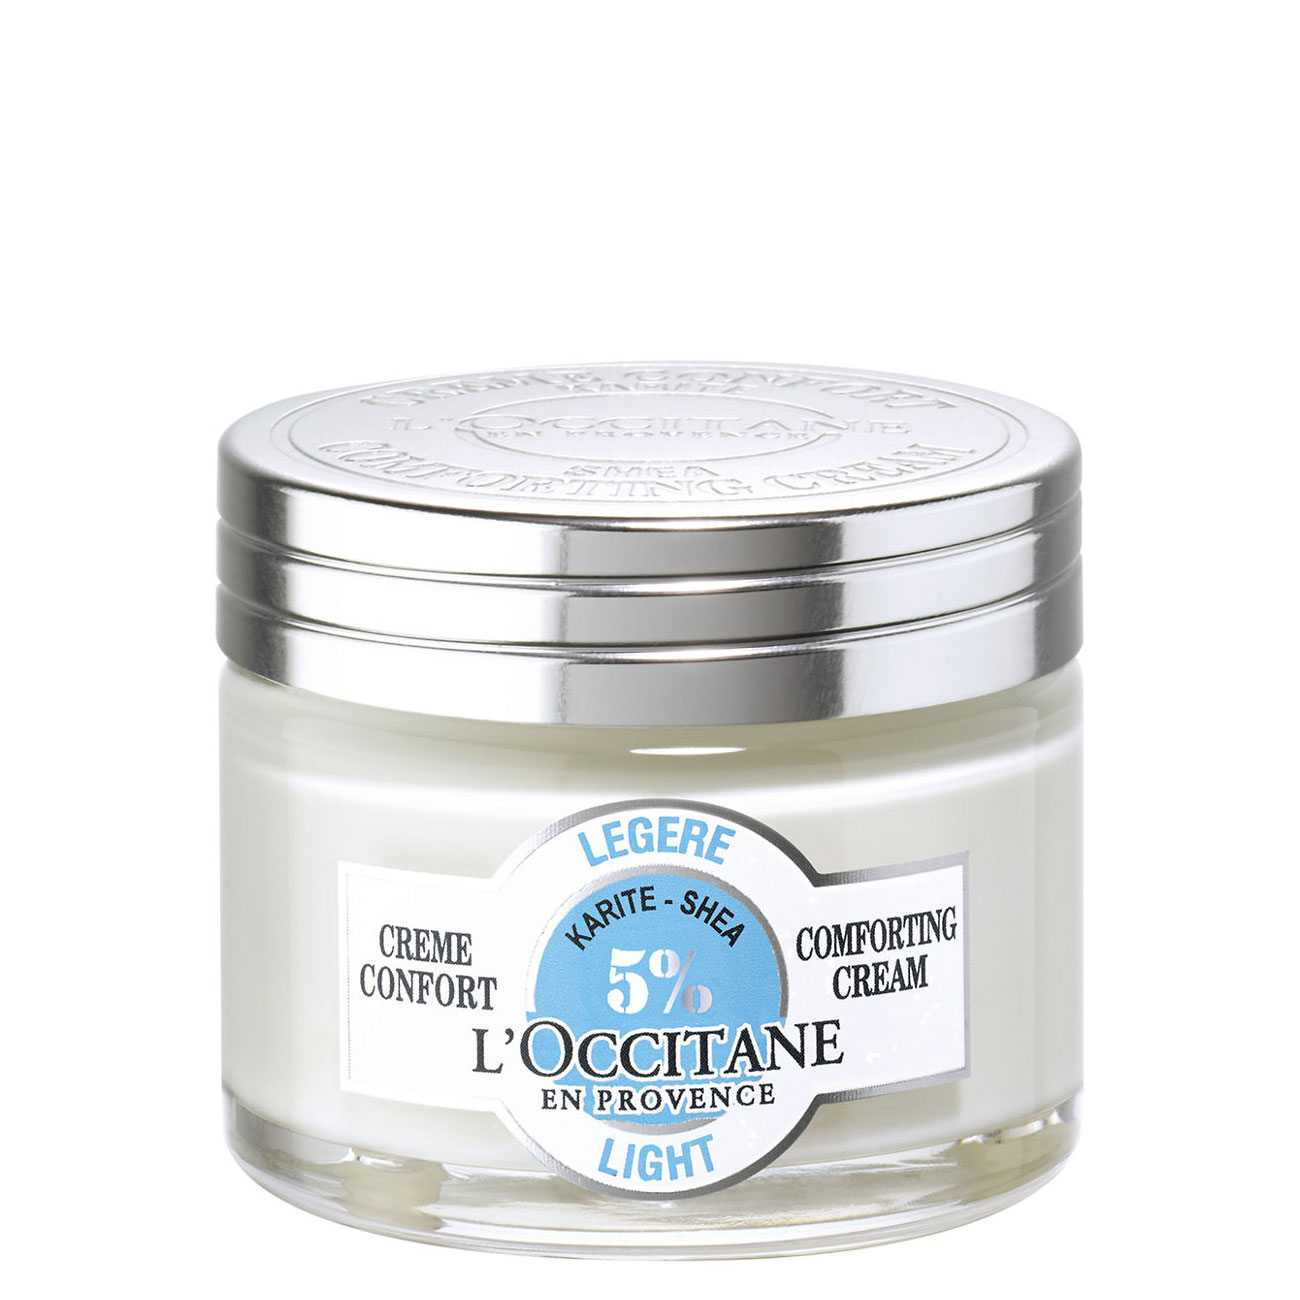 Shea Light Comforting Cream 50 Ml L'occitane imagine 2021 bestvalue.eu